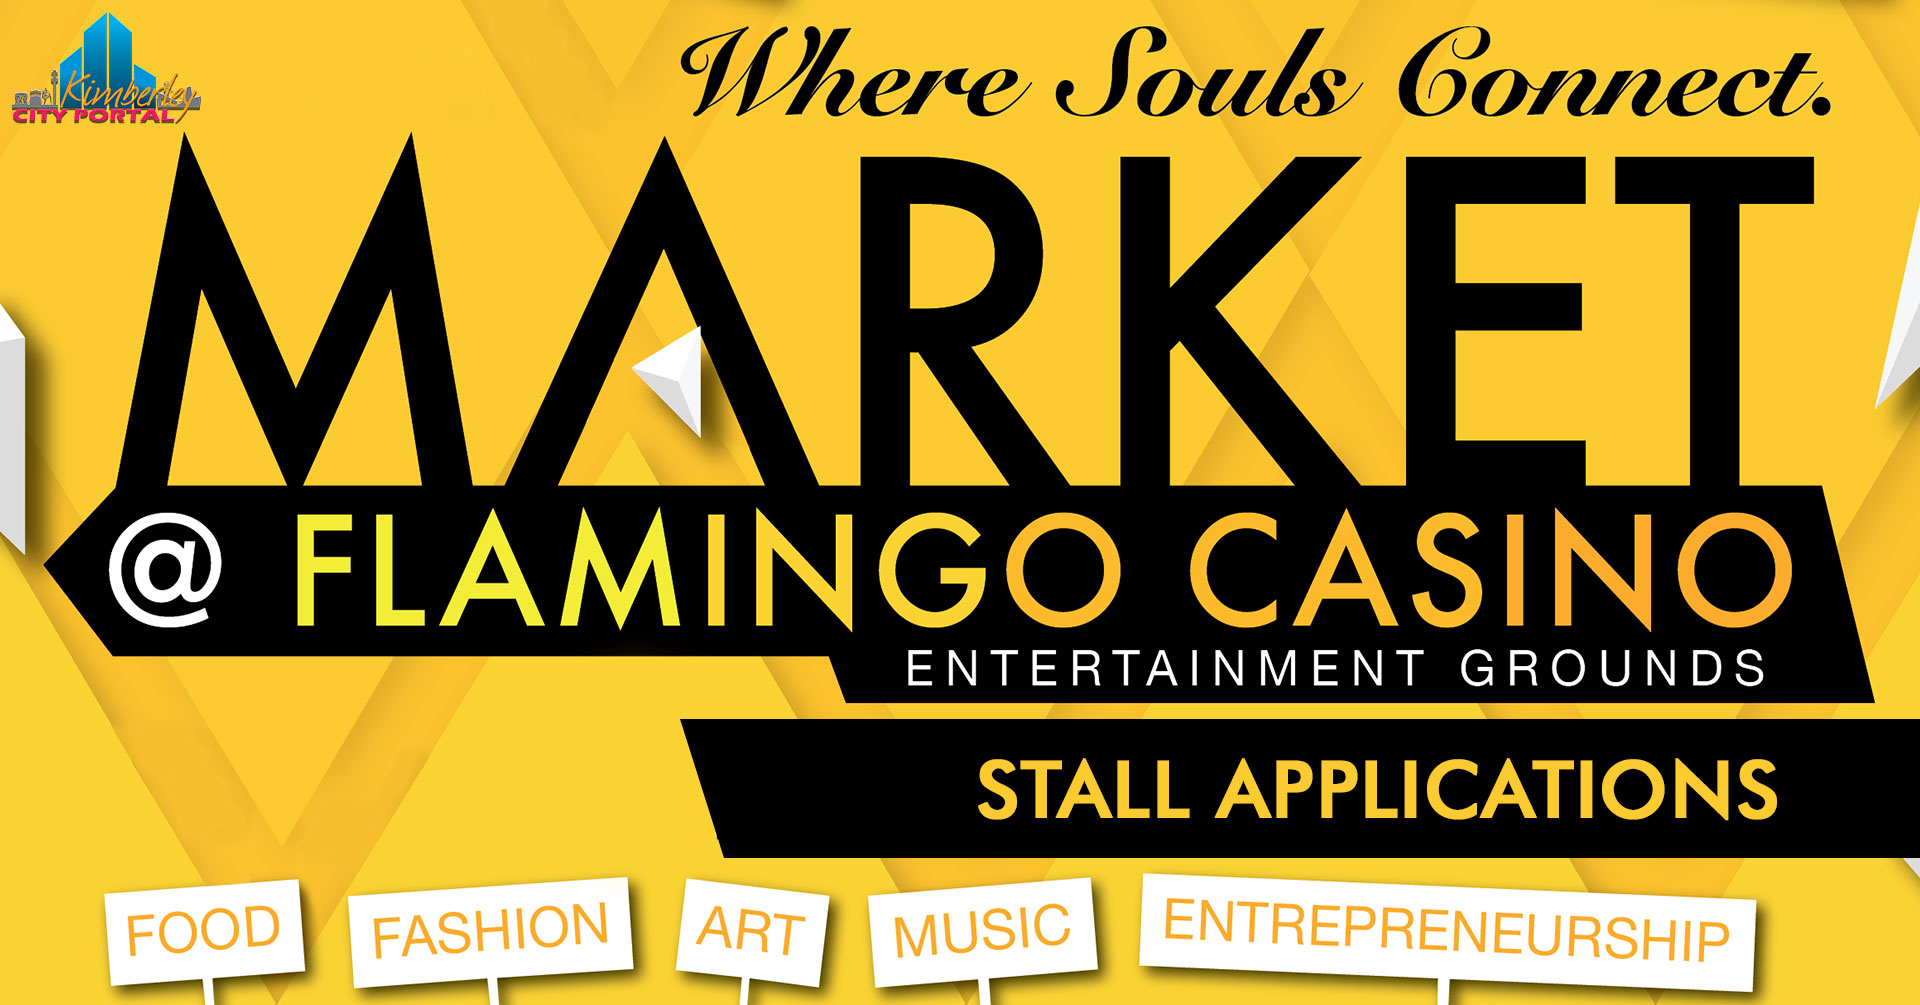 Pino Tau Market at flamingo stall applications